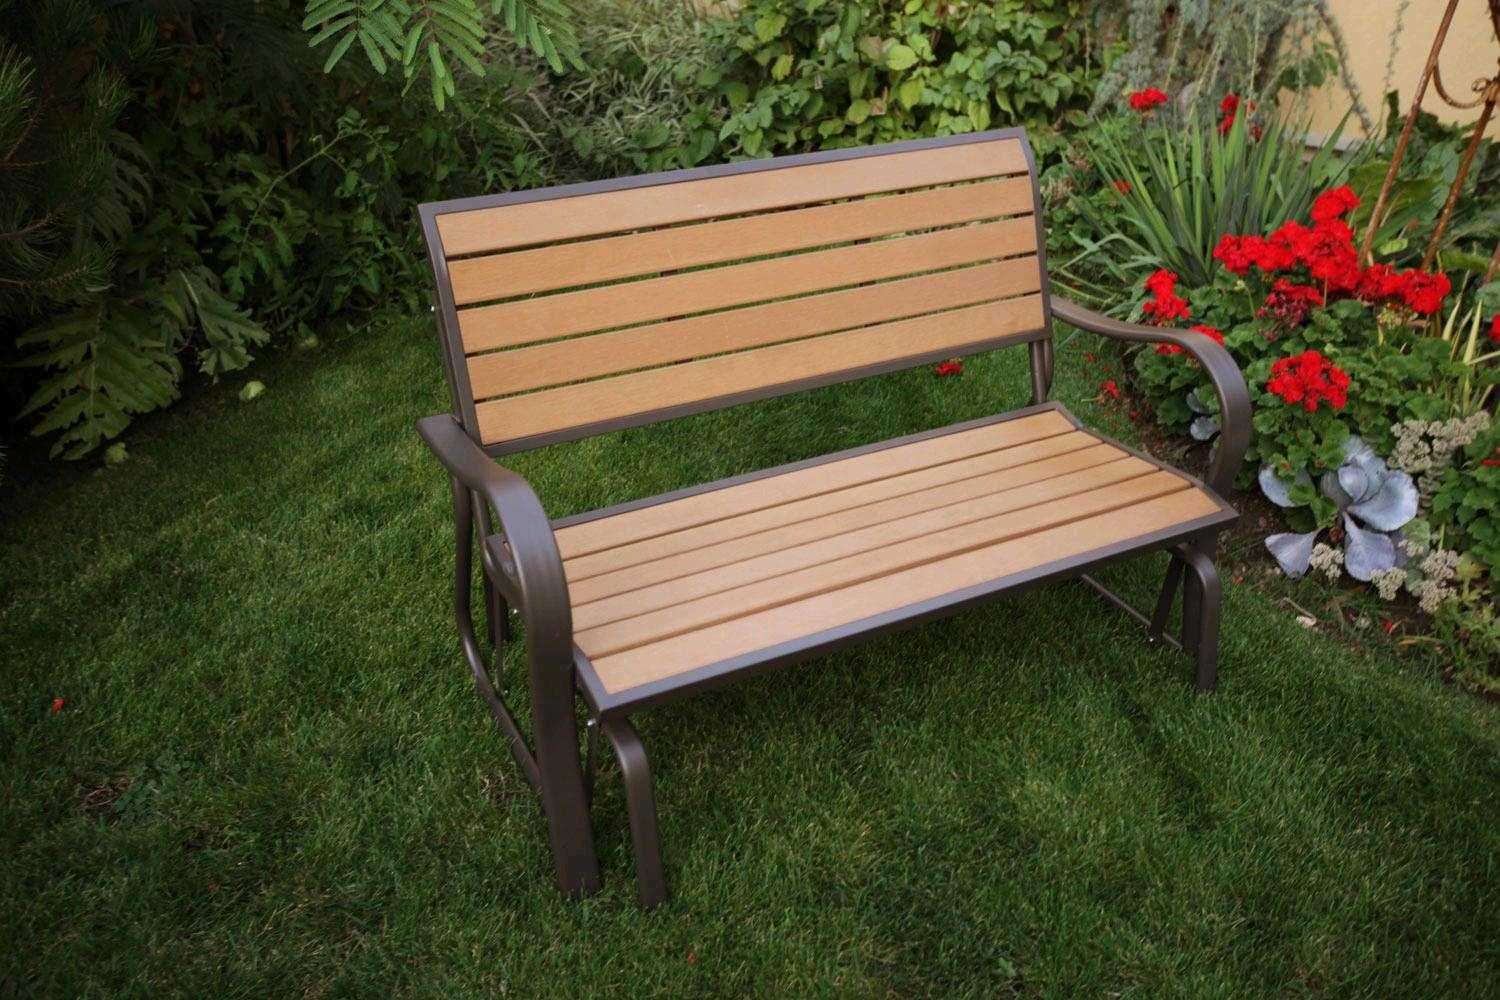 living steel outsunny seater patio garden glider black rocking armchair chair bench seat outdoor